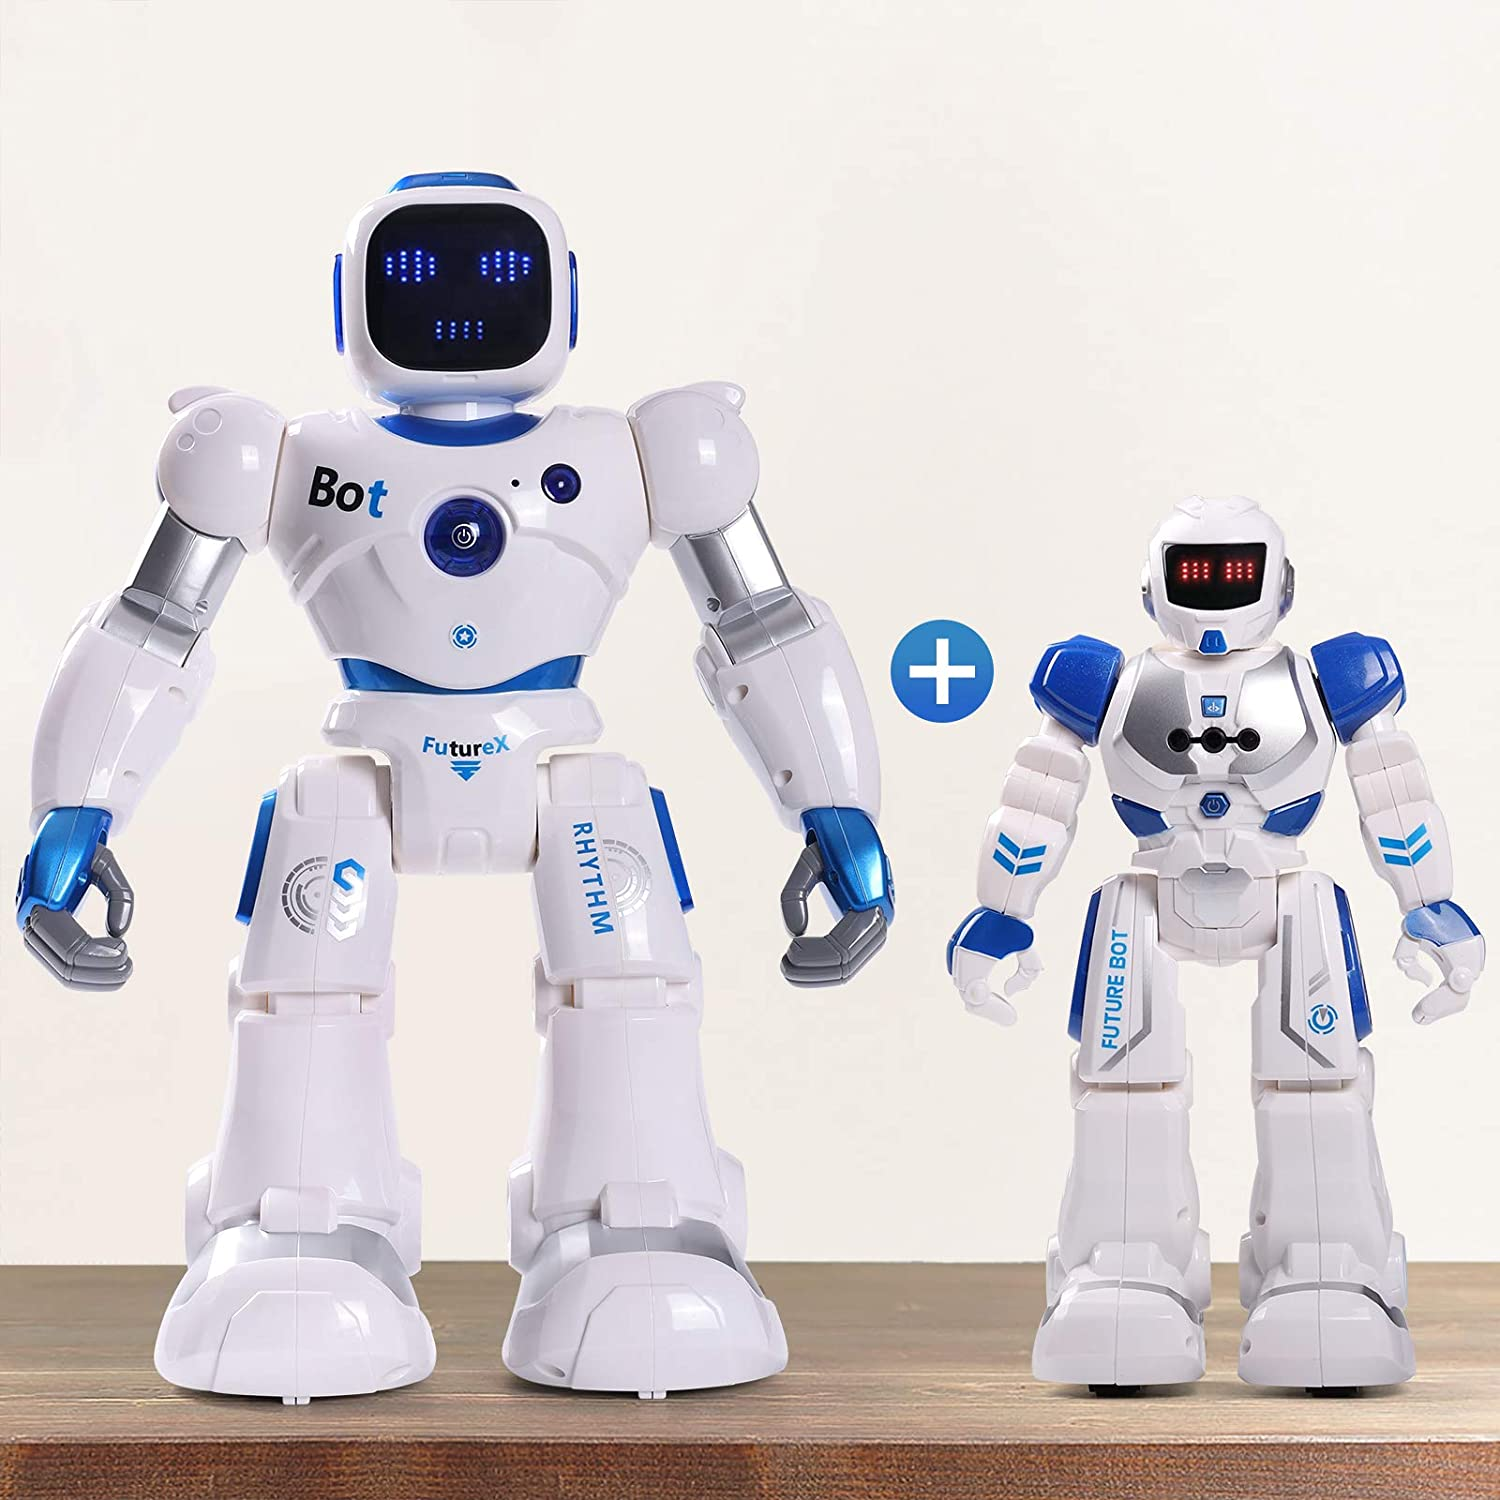 Take Carl Smart Robots and His Friends Home Together